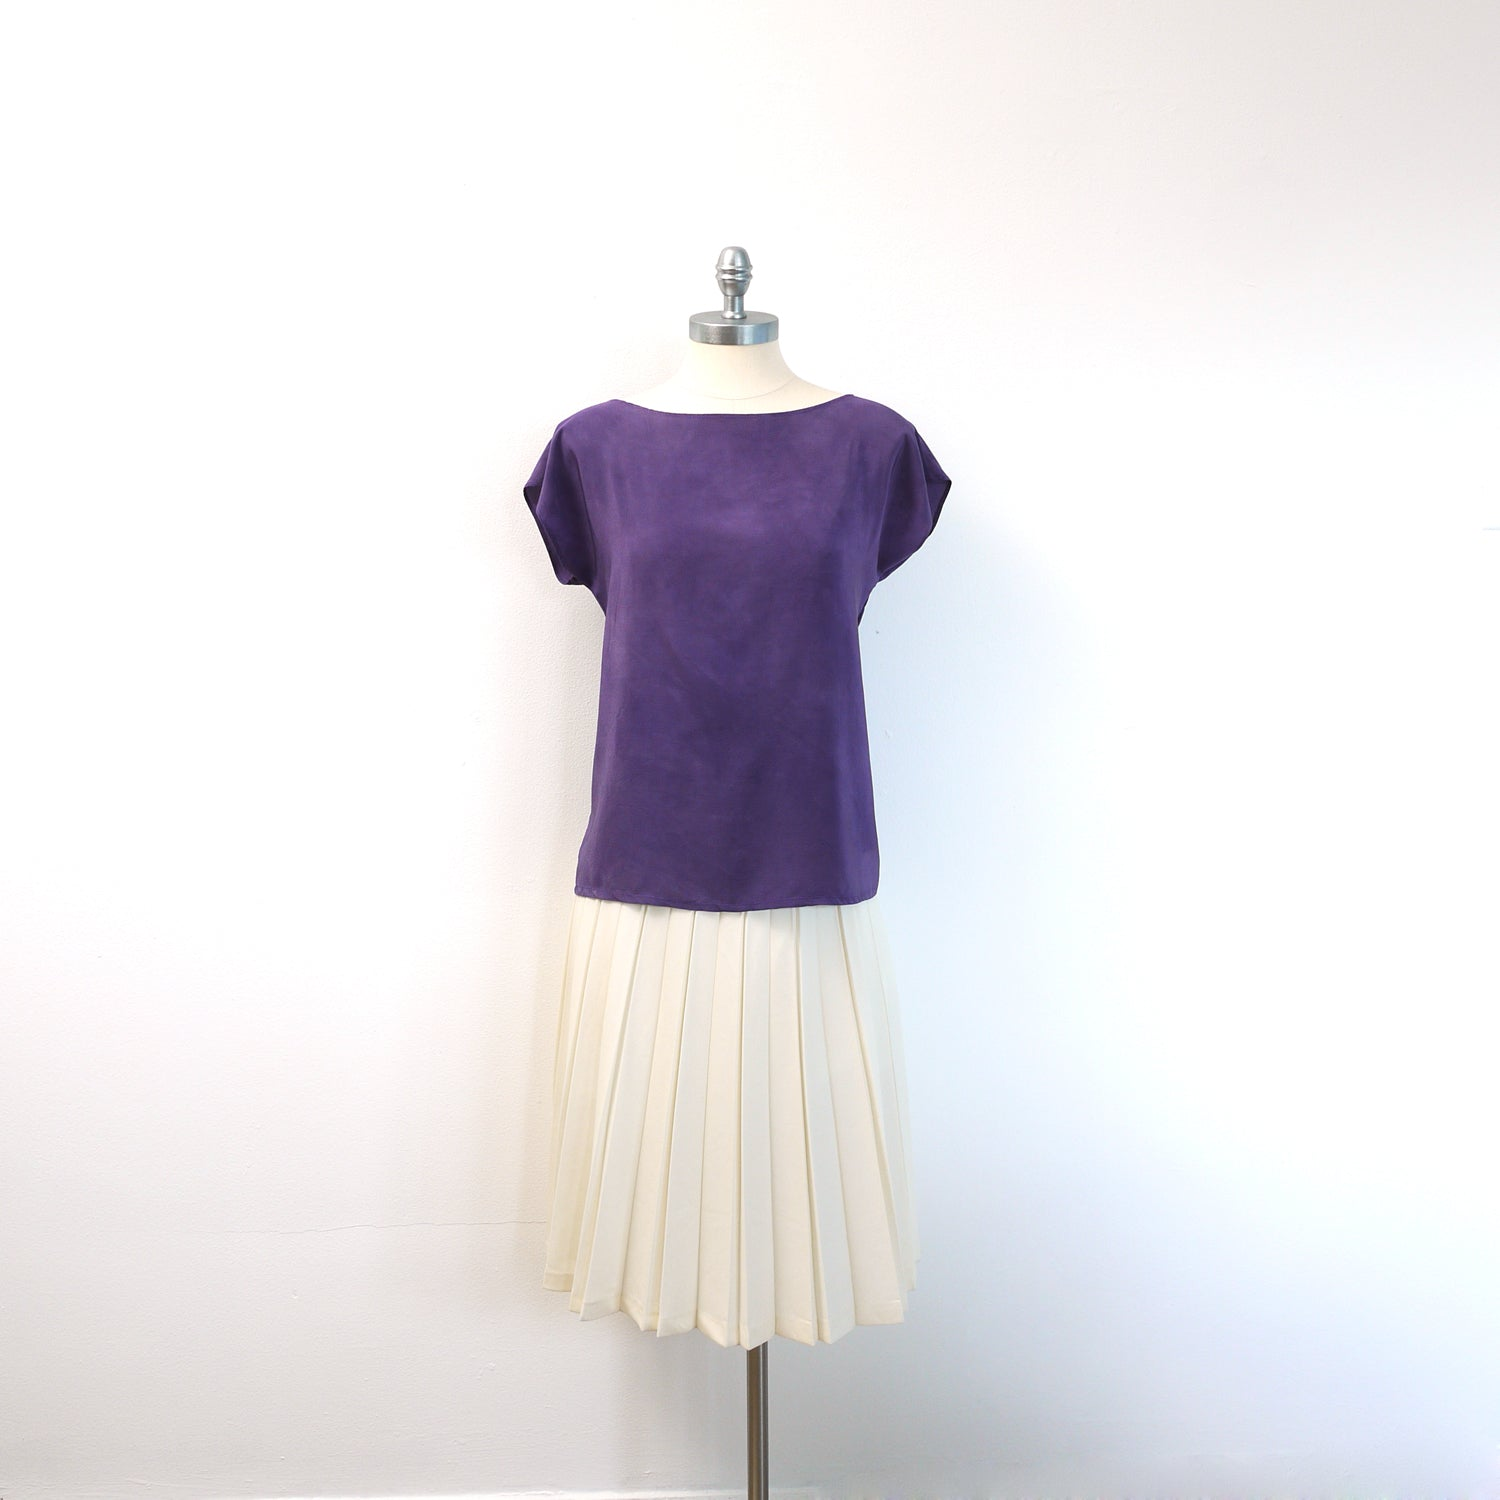 Grape silk top.  Natural dye - Logwood - silk blouse